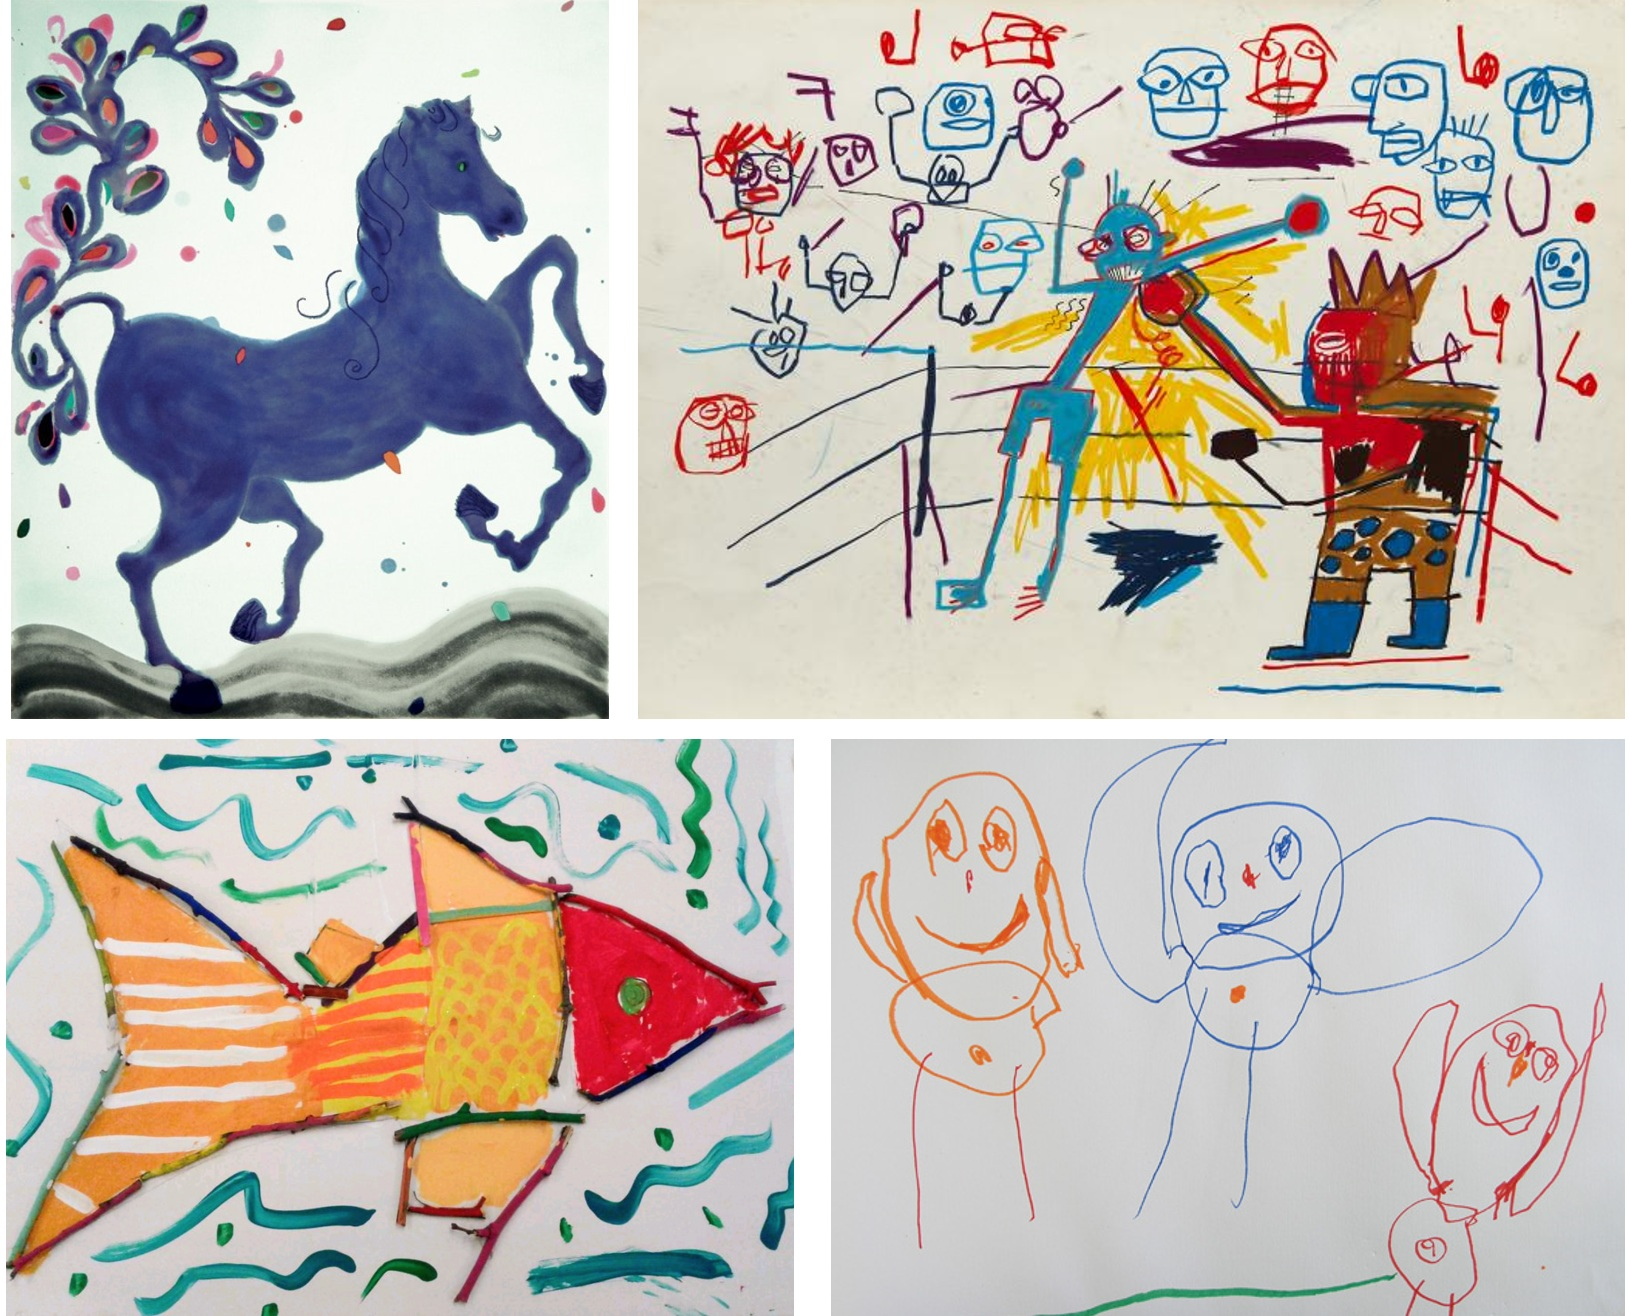 PRETEND INNOCENT ART (AND THE REAL THING) Clockwise from upper left: Owens, Basquiat, children's art.